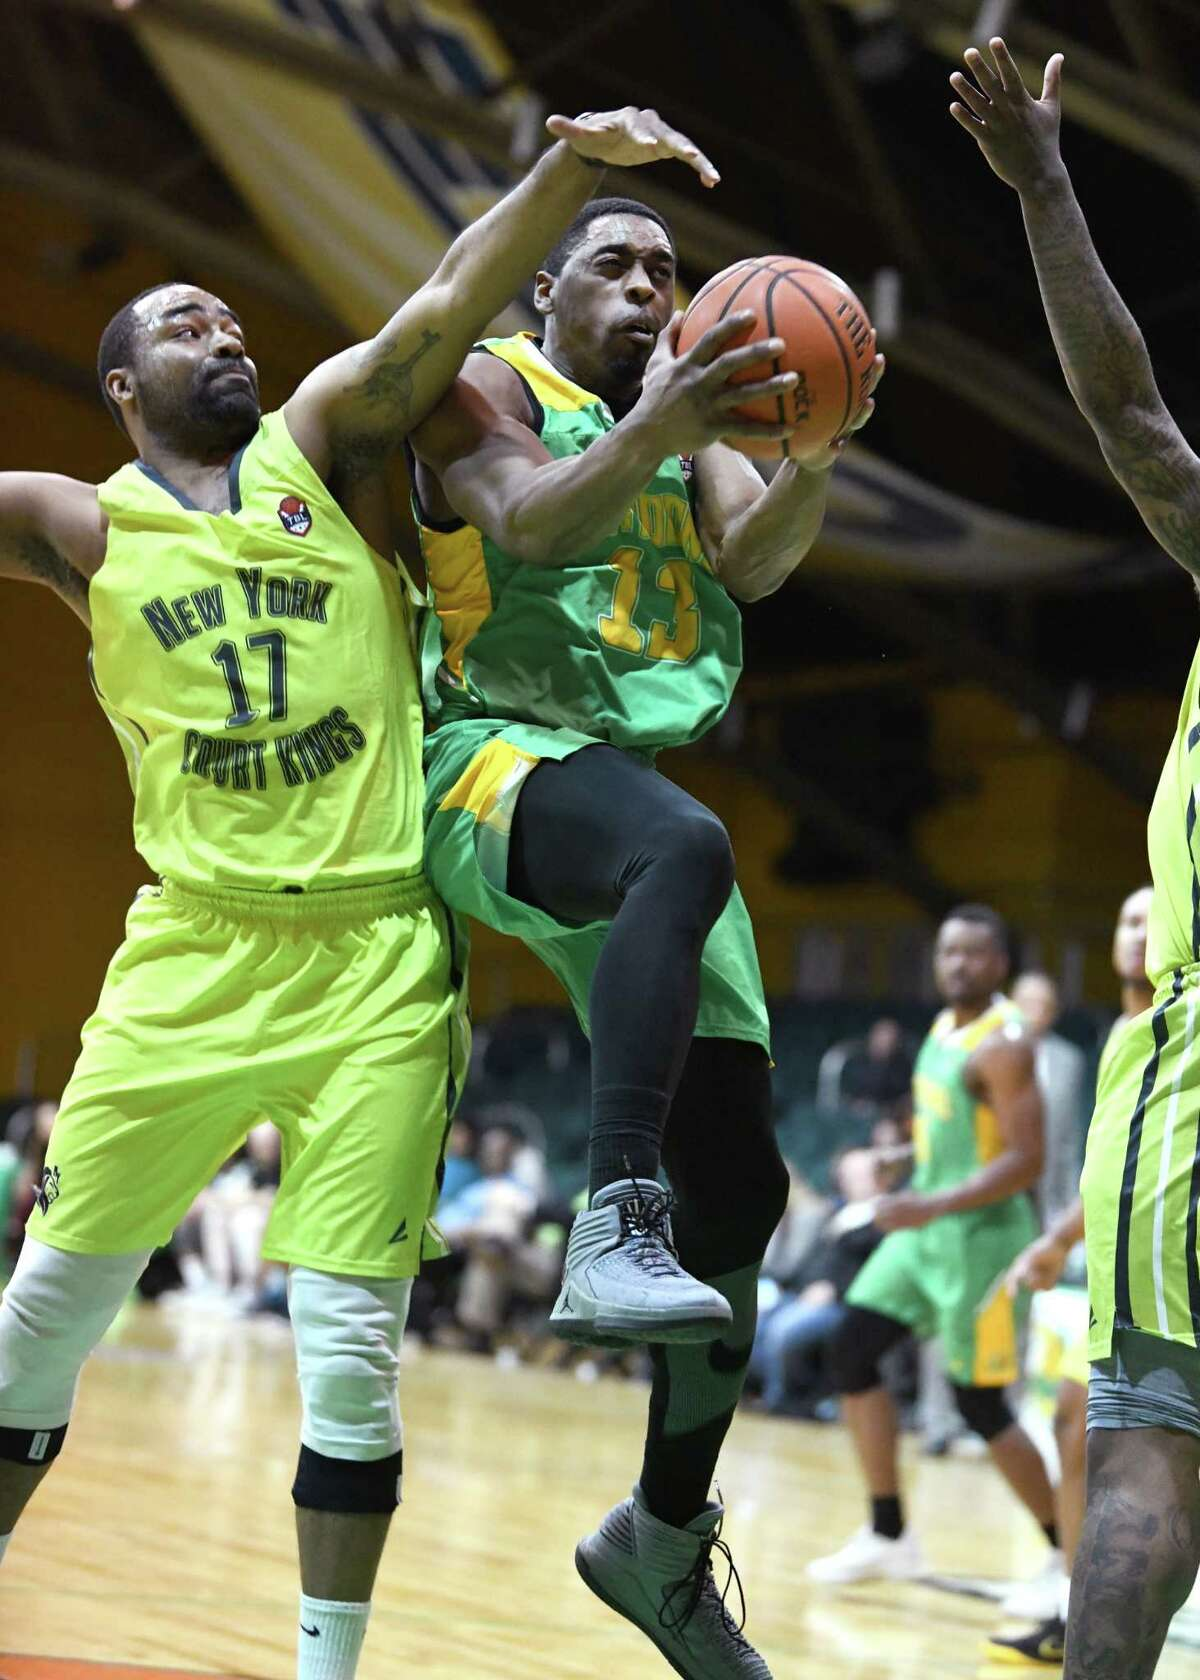 Albany Patroons' Steven Cunningham drives to the net guarded by New York Court Kings' Jerrome Jones during a basketball game at the Washington Avenue Armory on Monday, March 18, 2019 in Albany, N.Y. (Lori Van Buren/Times Union)